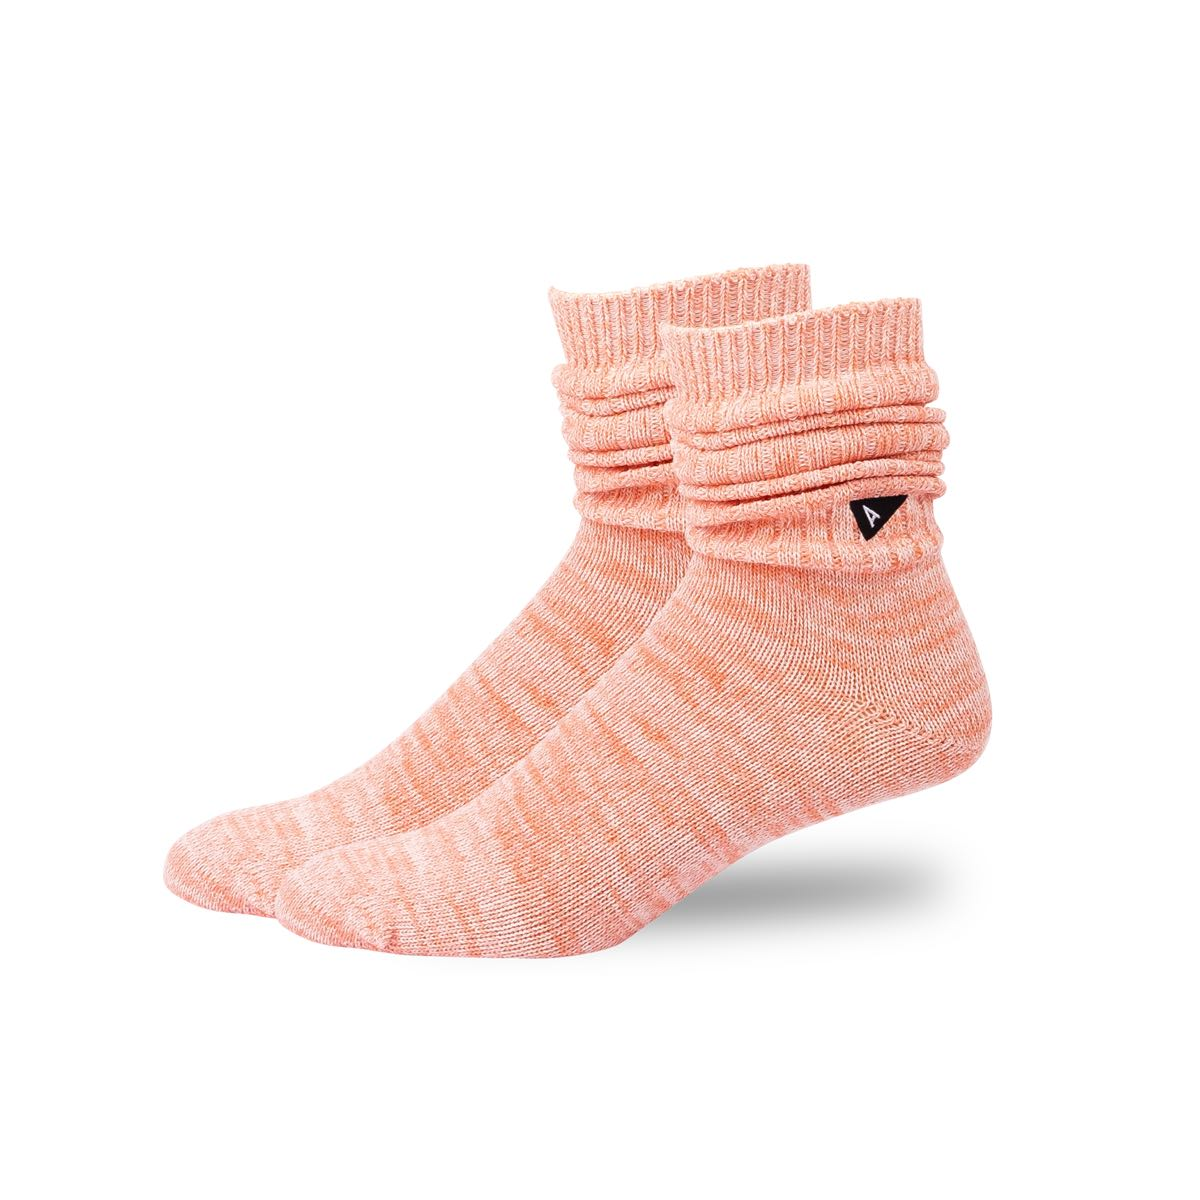 Arvin Goods Casual Twisted Socks - Coral image 3